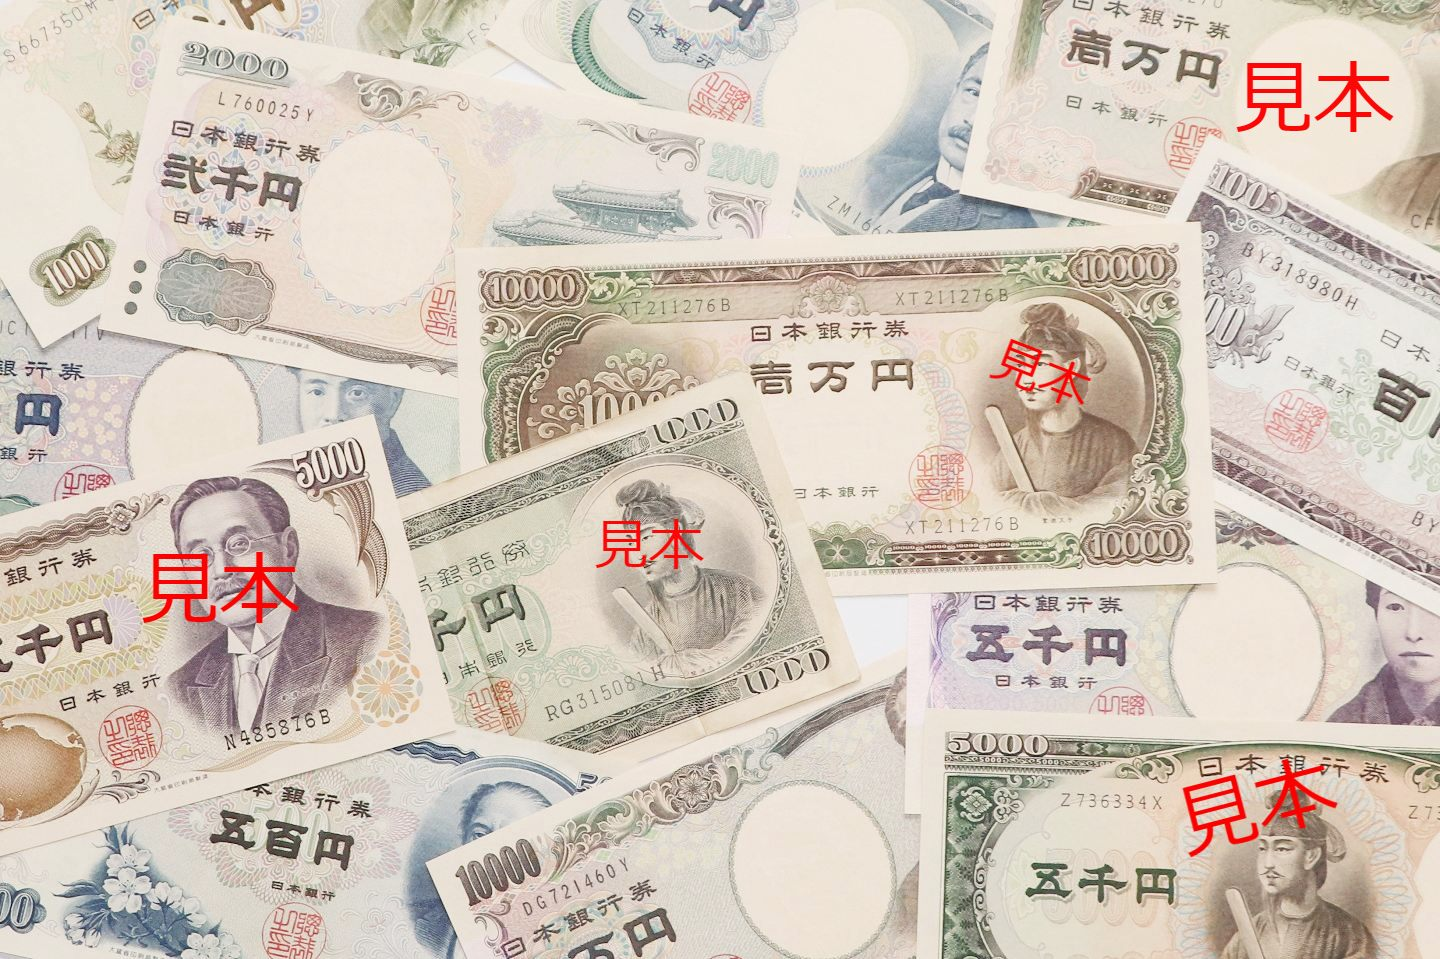 Money in Japan: Banknotes and Coins